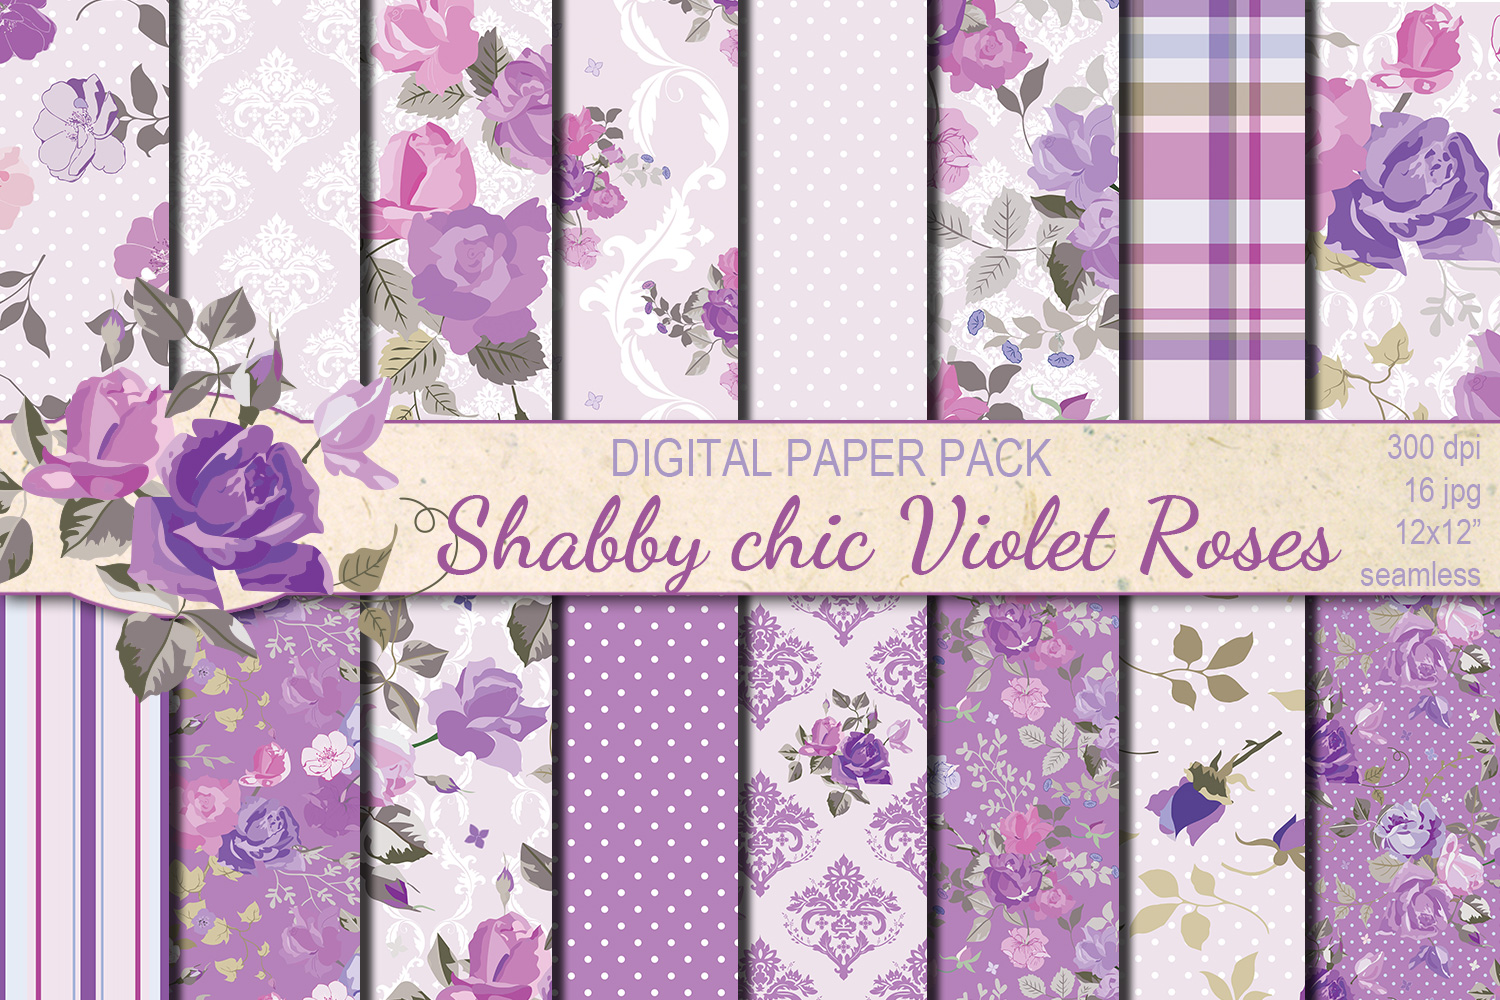 Shabby chic violet roses seamless digital paper pack example image 1